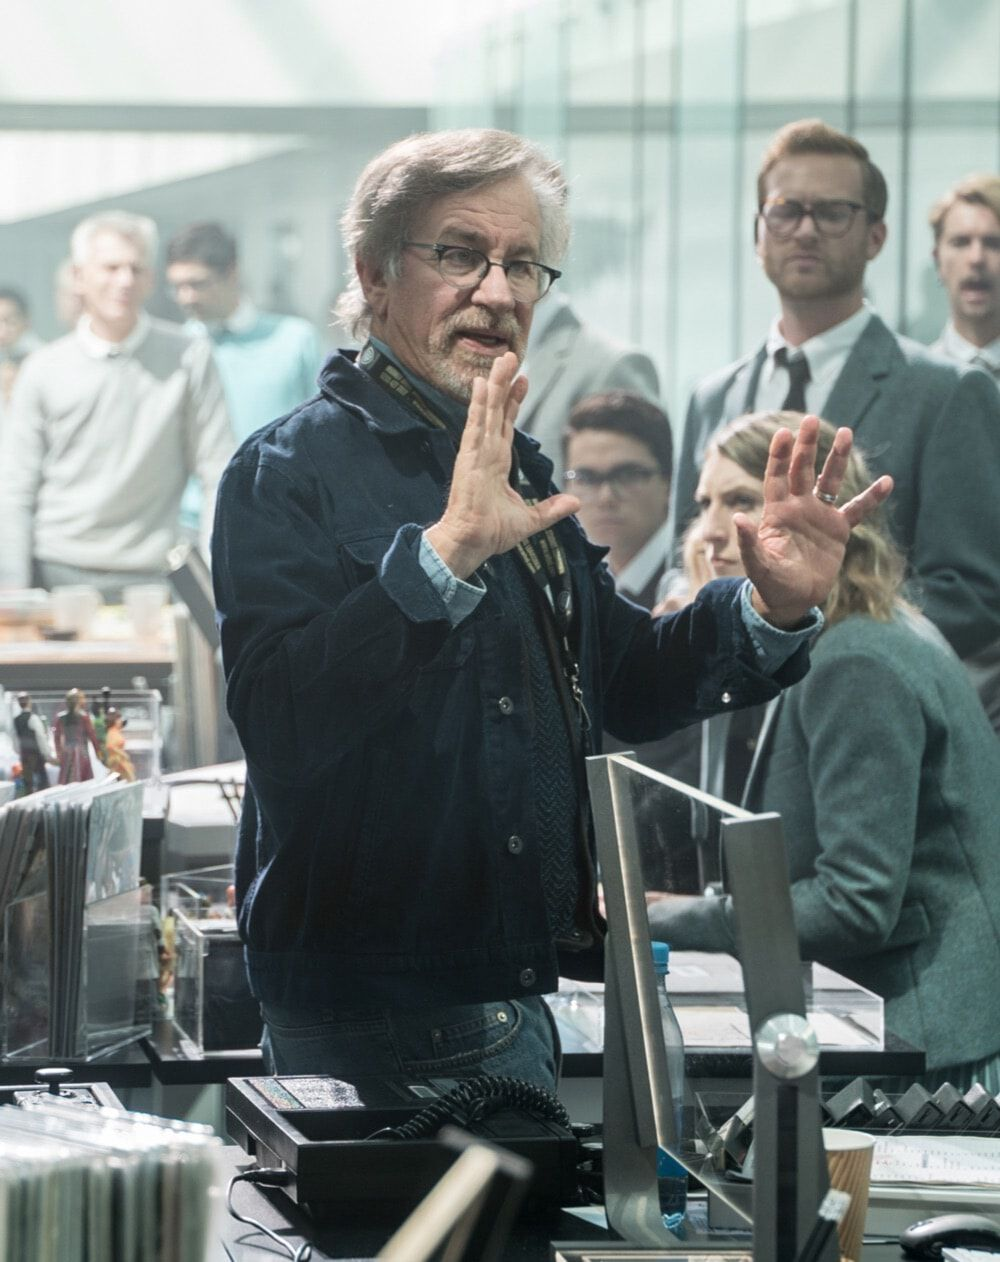 Spielberg describes a scene to his large cast of players in the offices of the OASIS Oologists in Ready Player One.